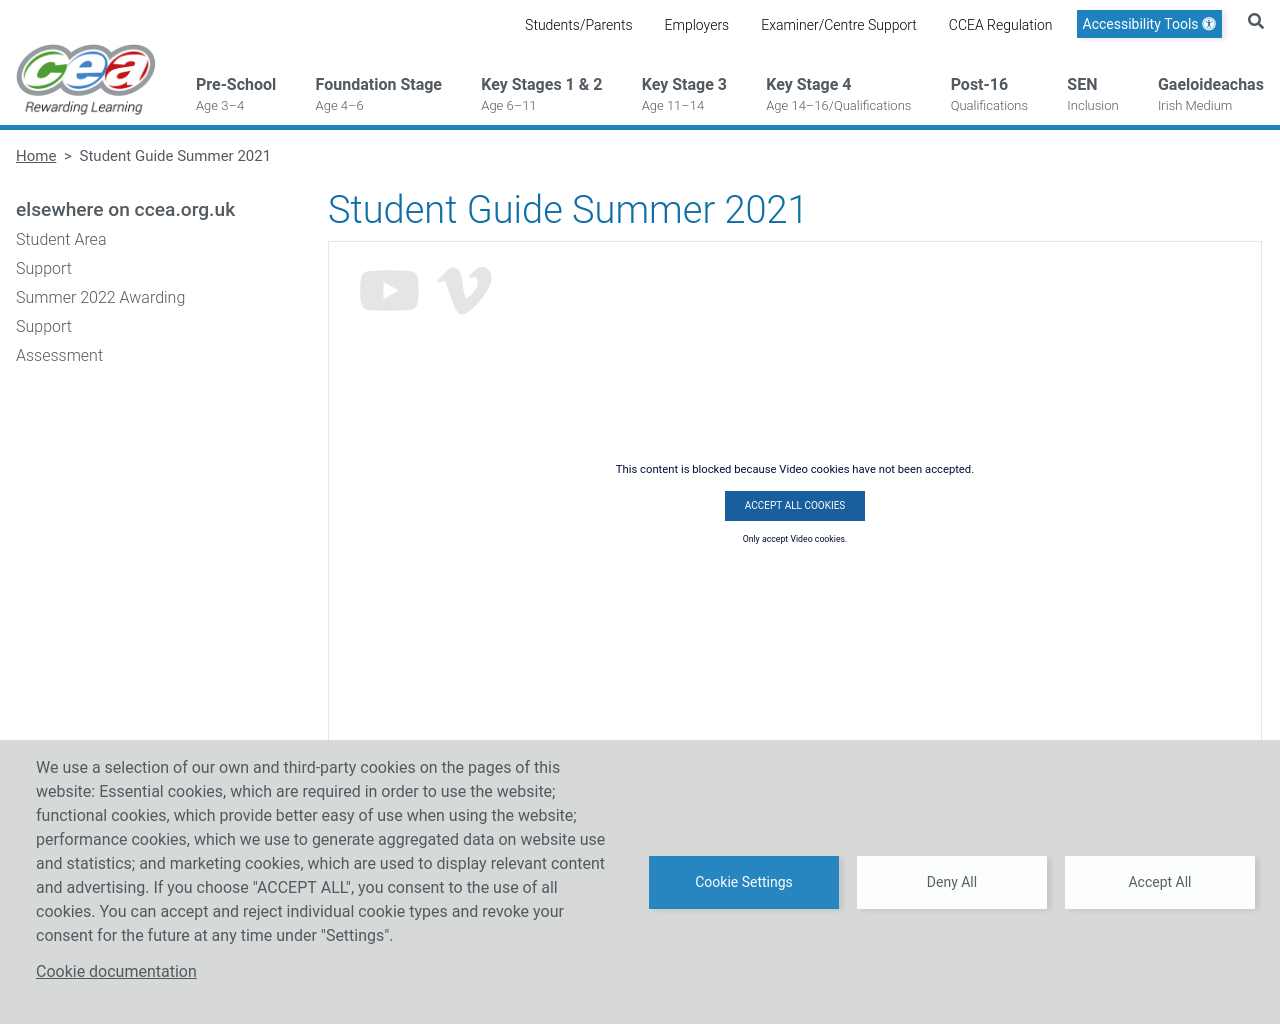 Student Guide Summer 2021